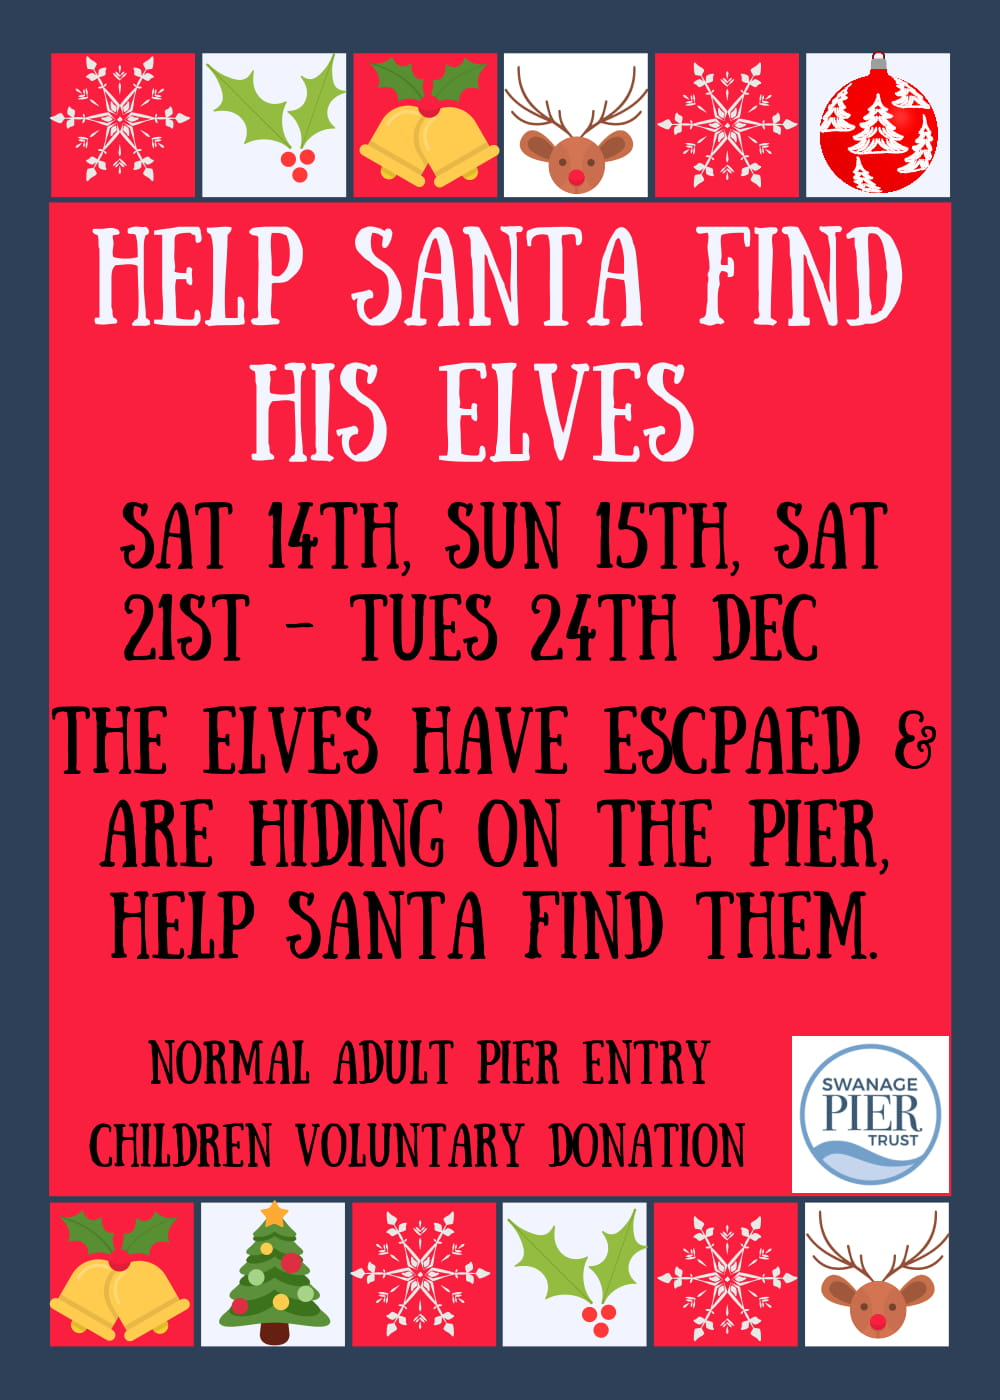 Help Santa Find His Elves on the Pier